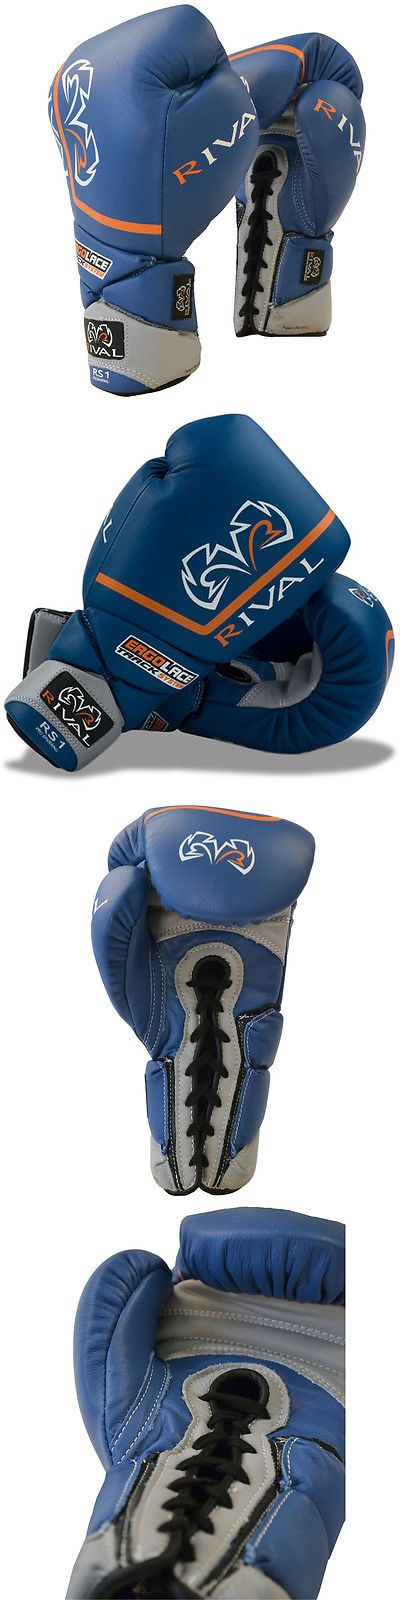 Gloves - Boxing 30102: Rival Boxing Pro Sparring Gloves - Blue -> BUY IT NOW ONLY: $139.99 on eBay!